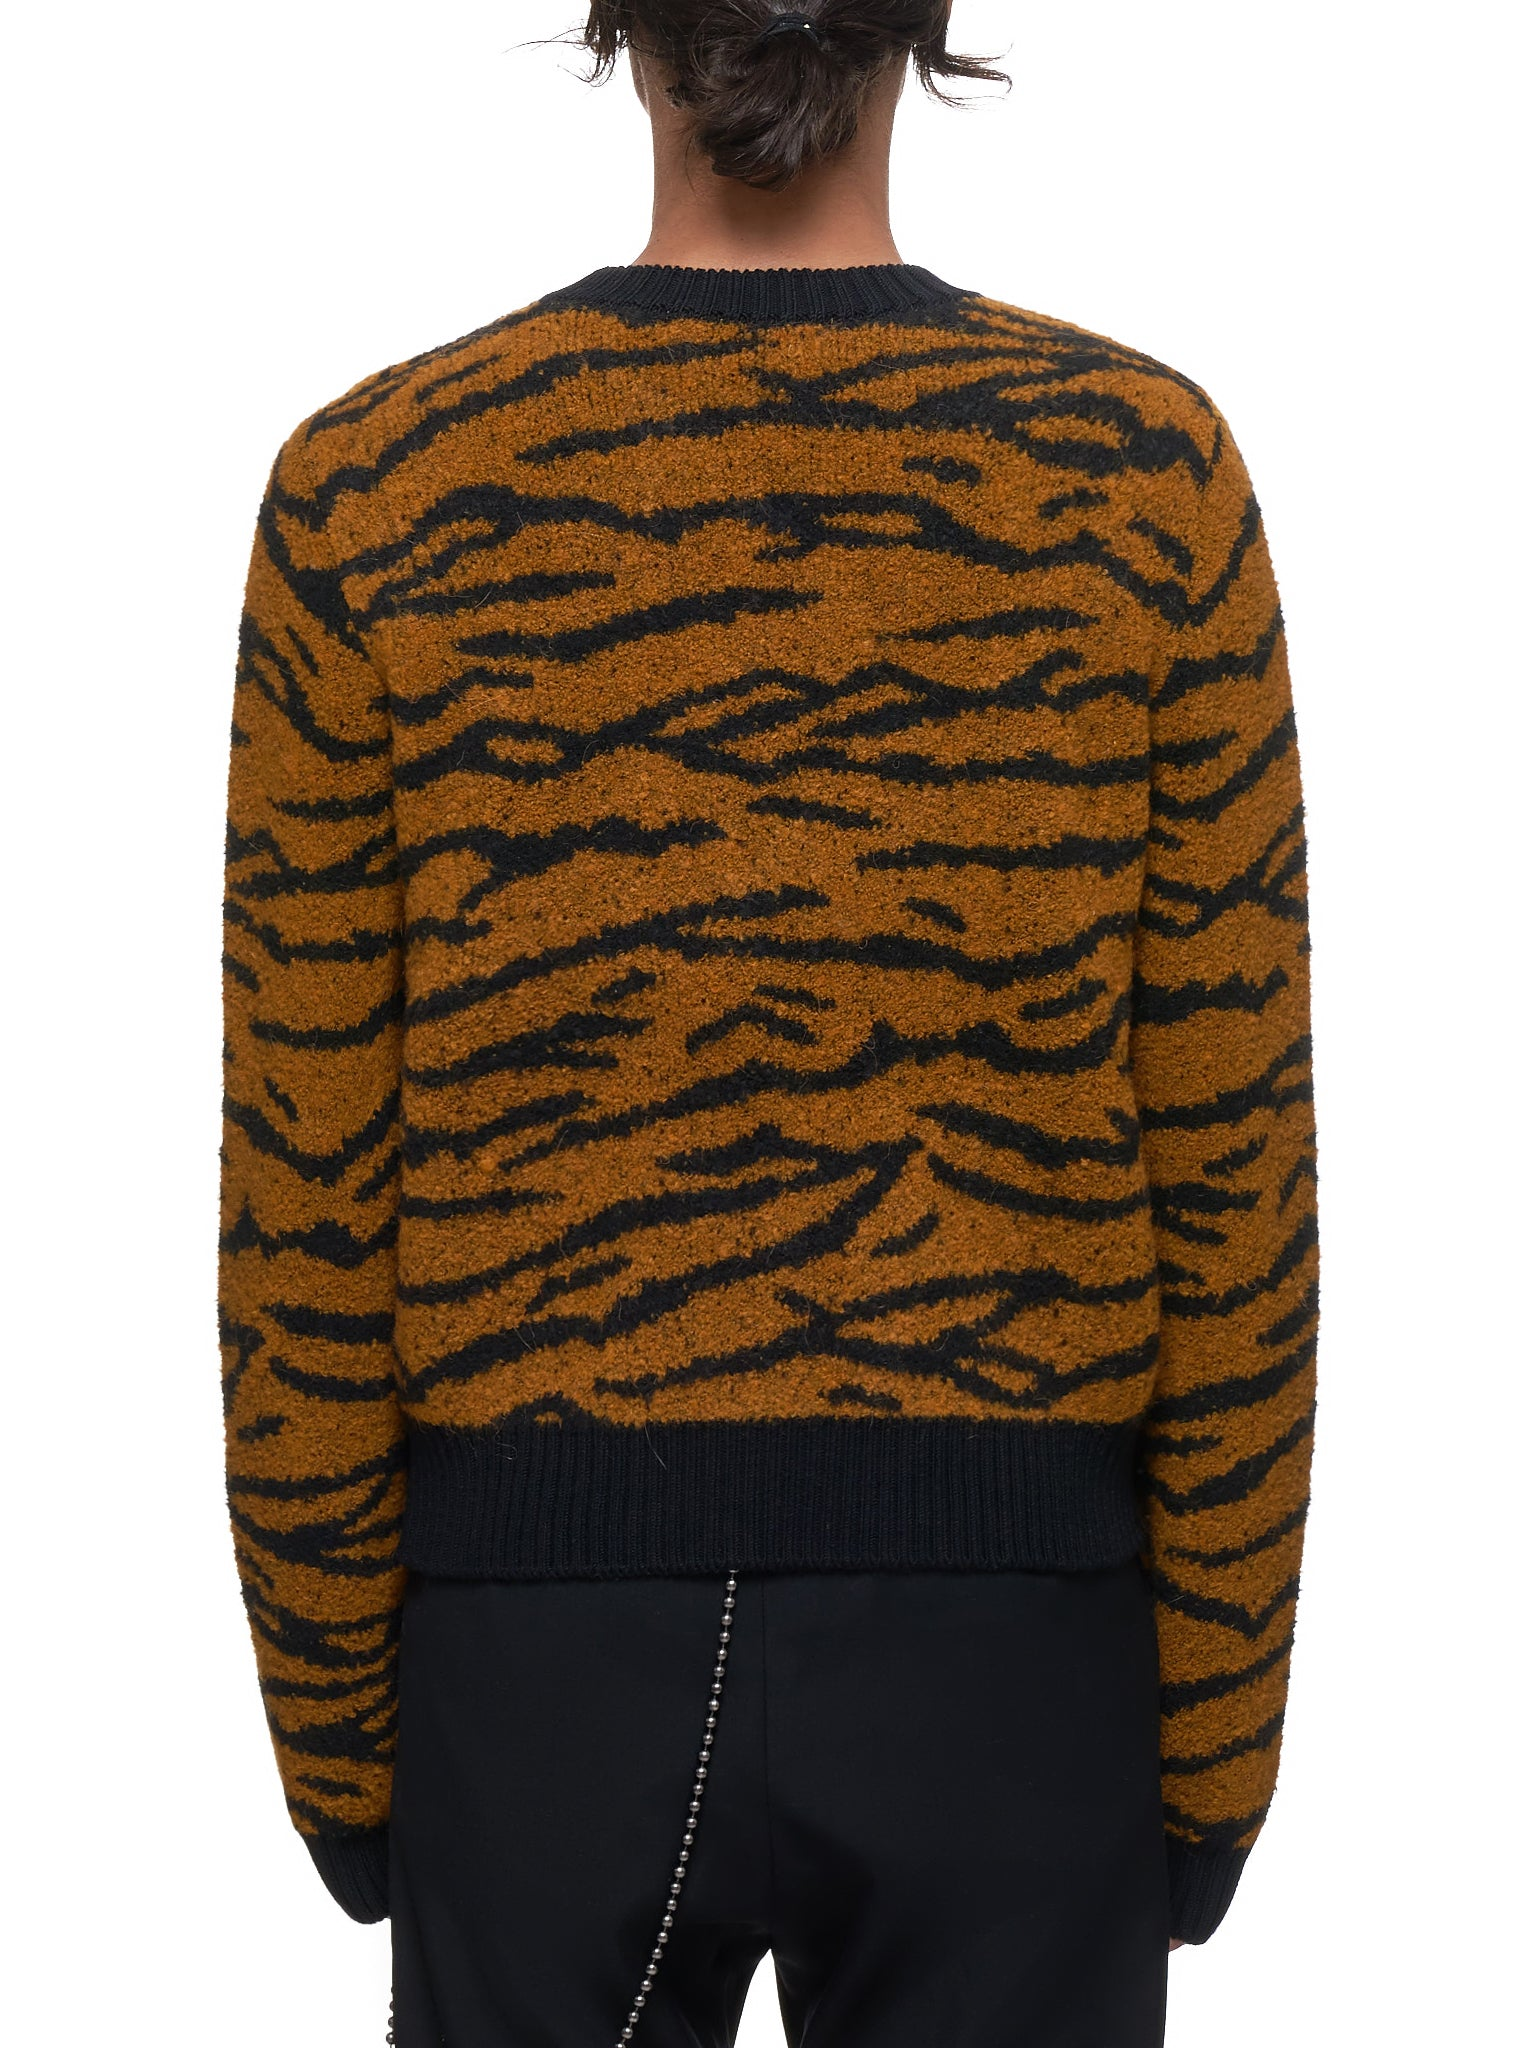 John Lawrence Sullivan Sweater - Hlorenzo Back